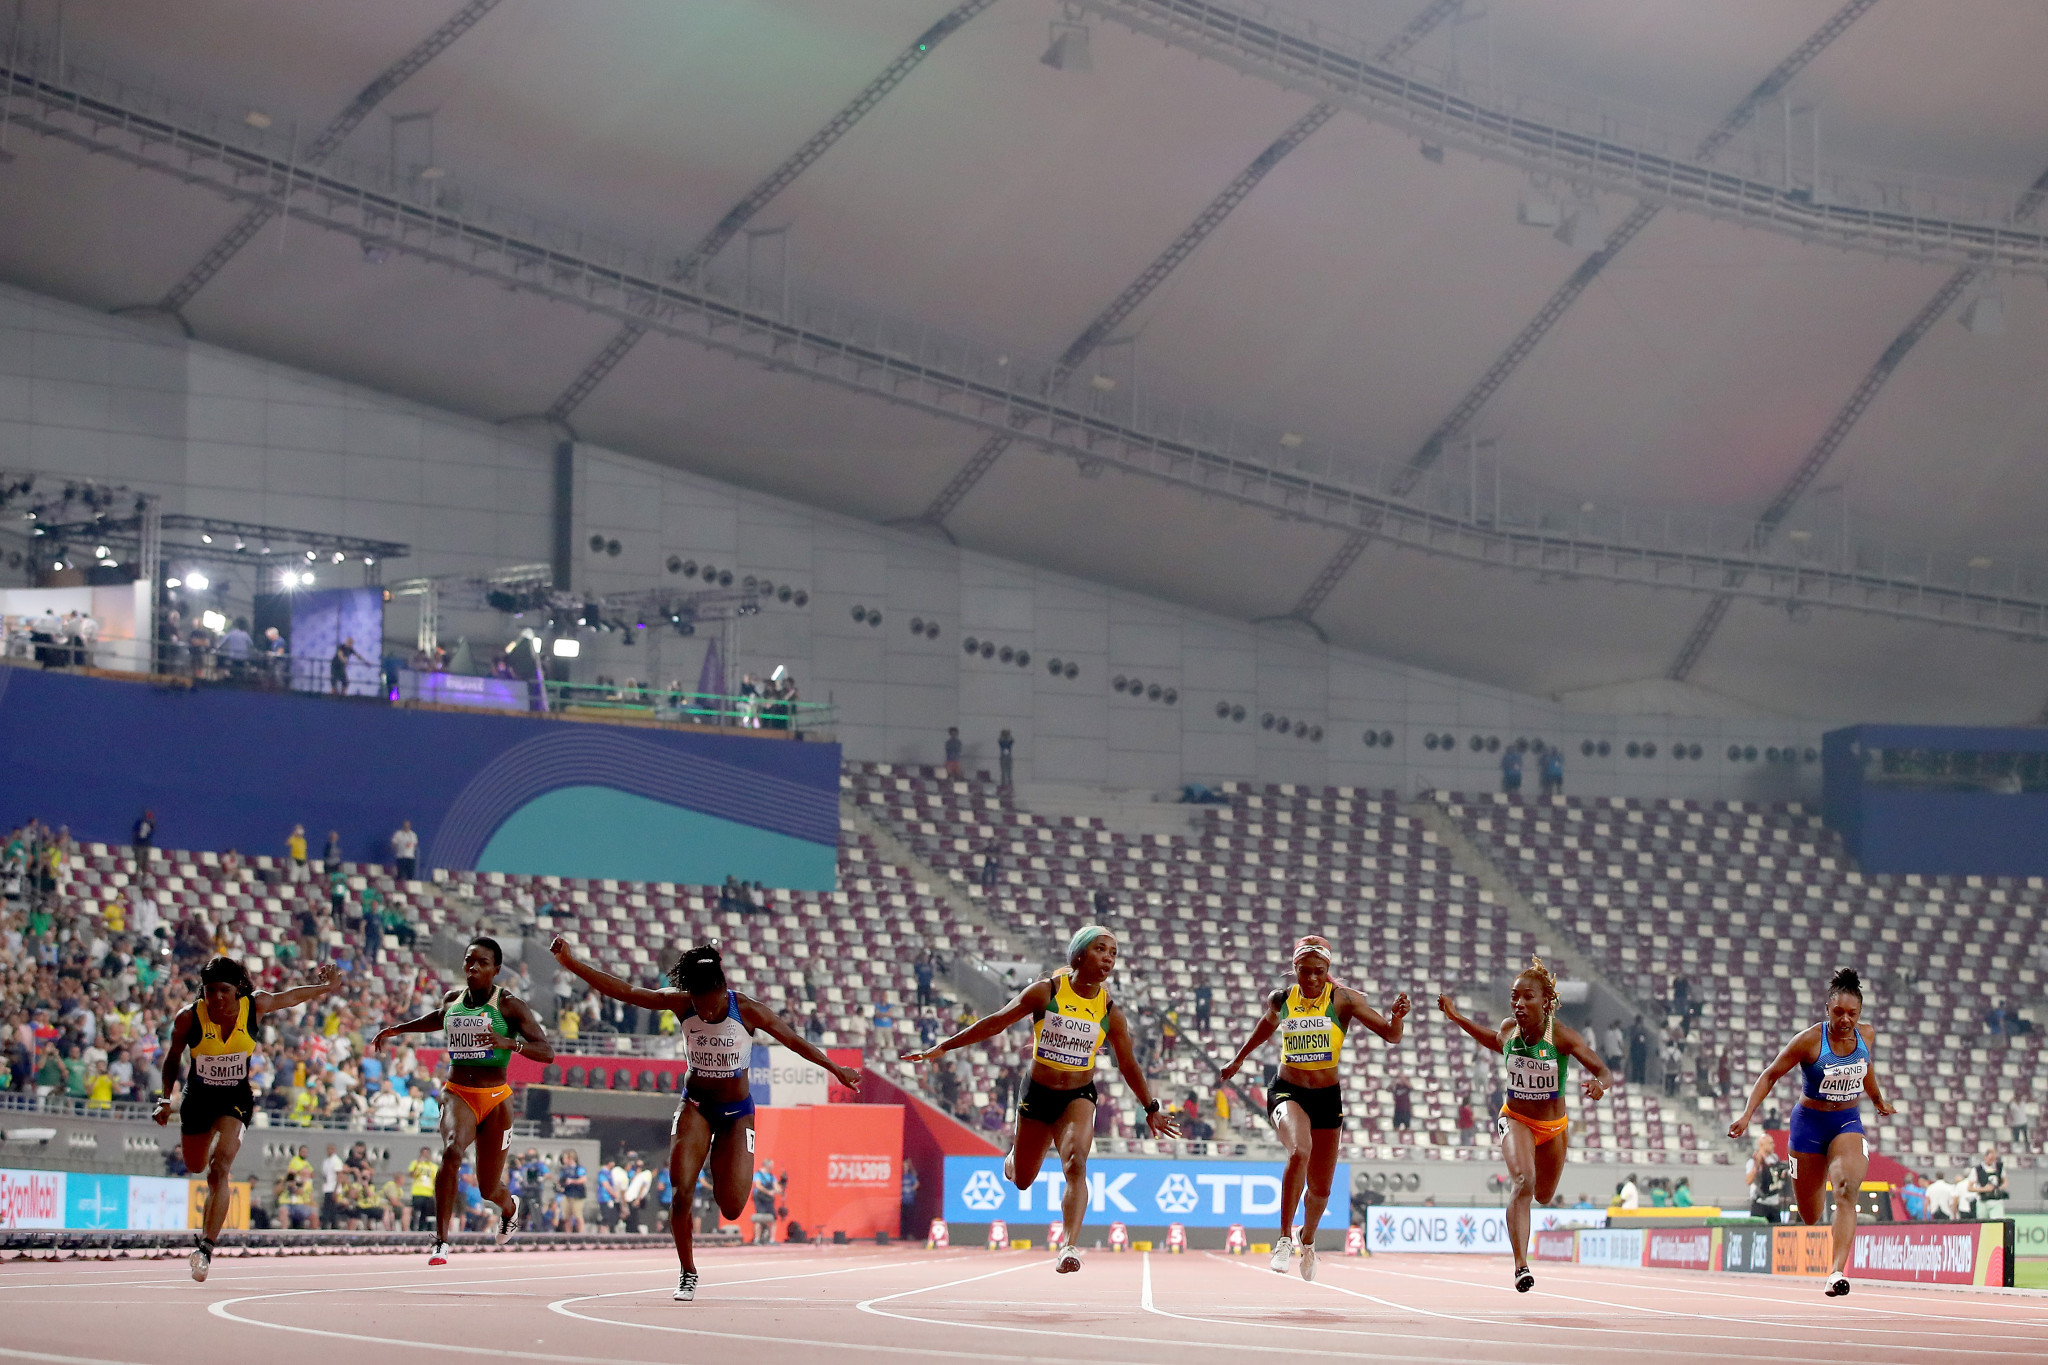 The final of the women's 100m, won by Jamaica's Shelly-Ann Fraser-Pryce, took place in an almost empty Khalifa International Stadium with the majority of the already small crowd have departed a long time before the started ©Getty Images